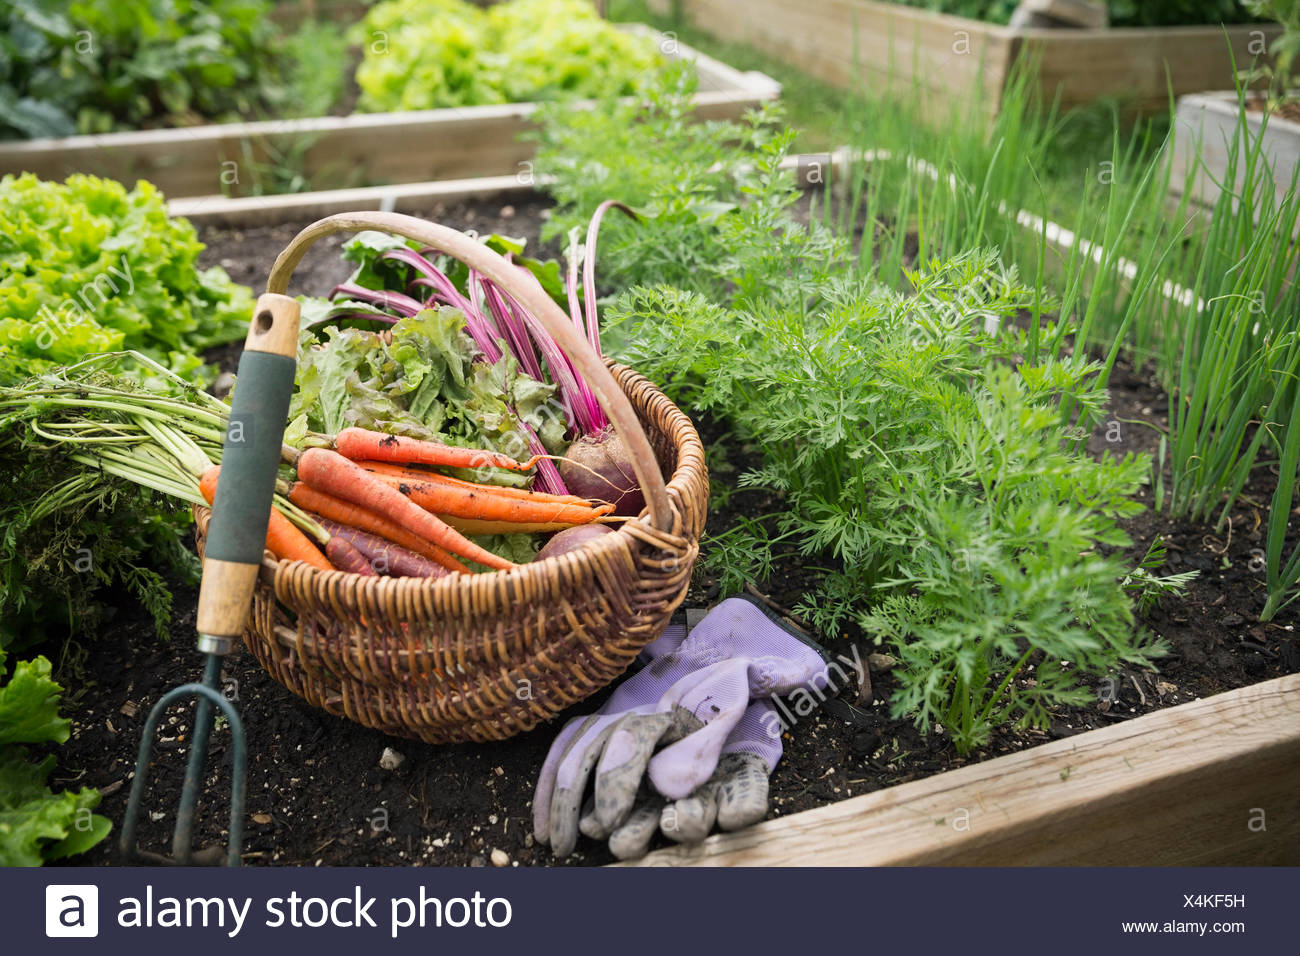 Harvested vegetables, gardening gloves and hand cultivator garden - Stock Image